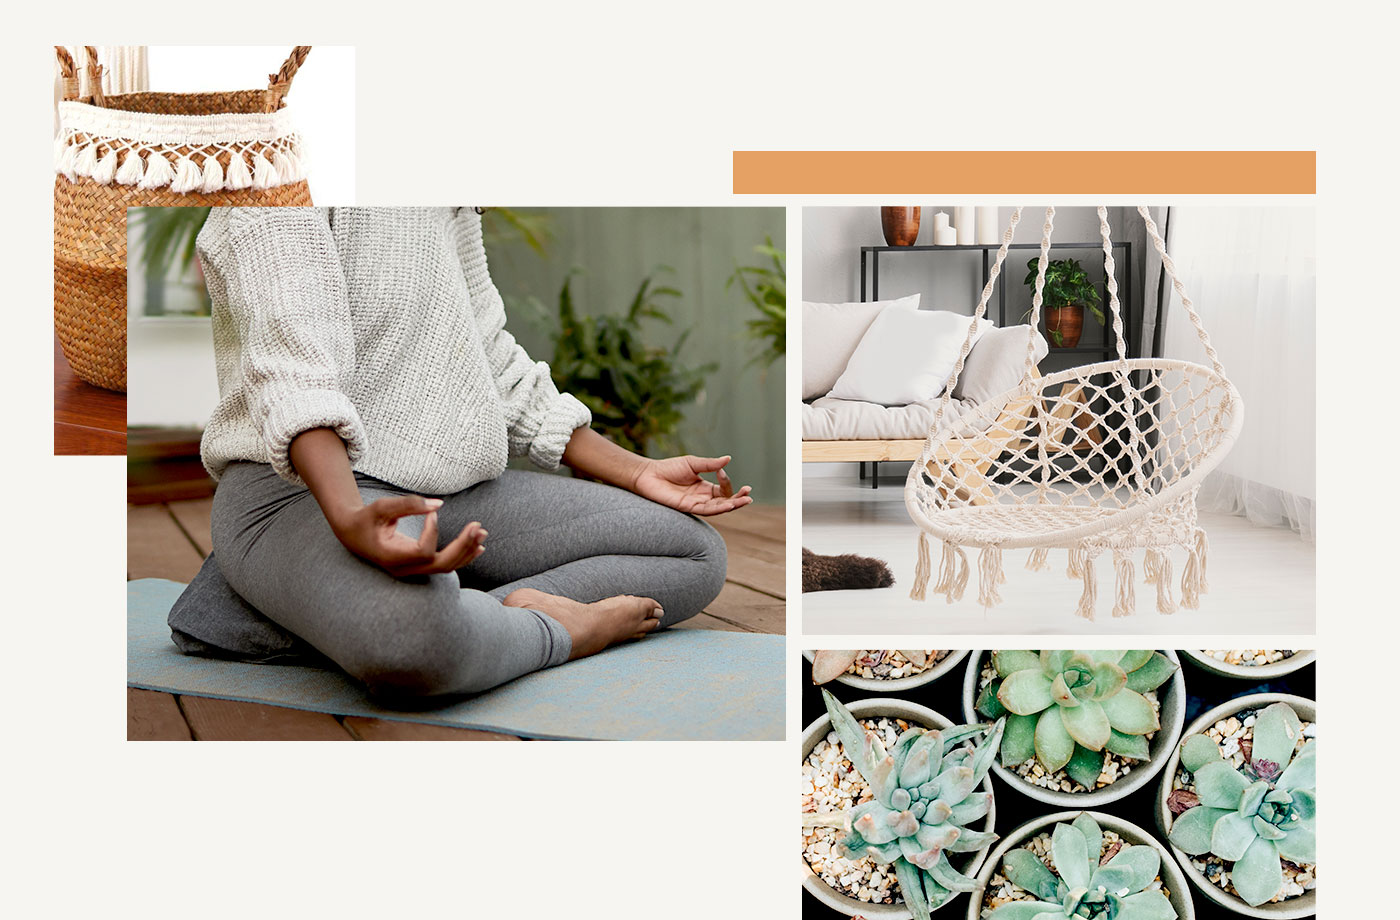 Thumbnail for Everything You Need To Create a Beautiful Outdoor Meditation Space—Even if You Don't Have Much Room